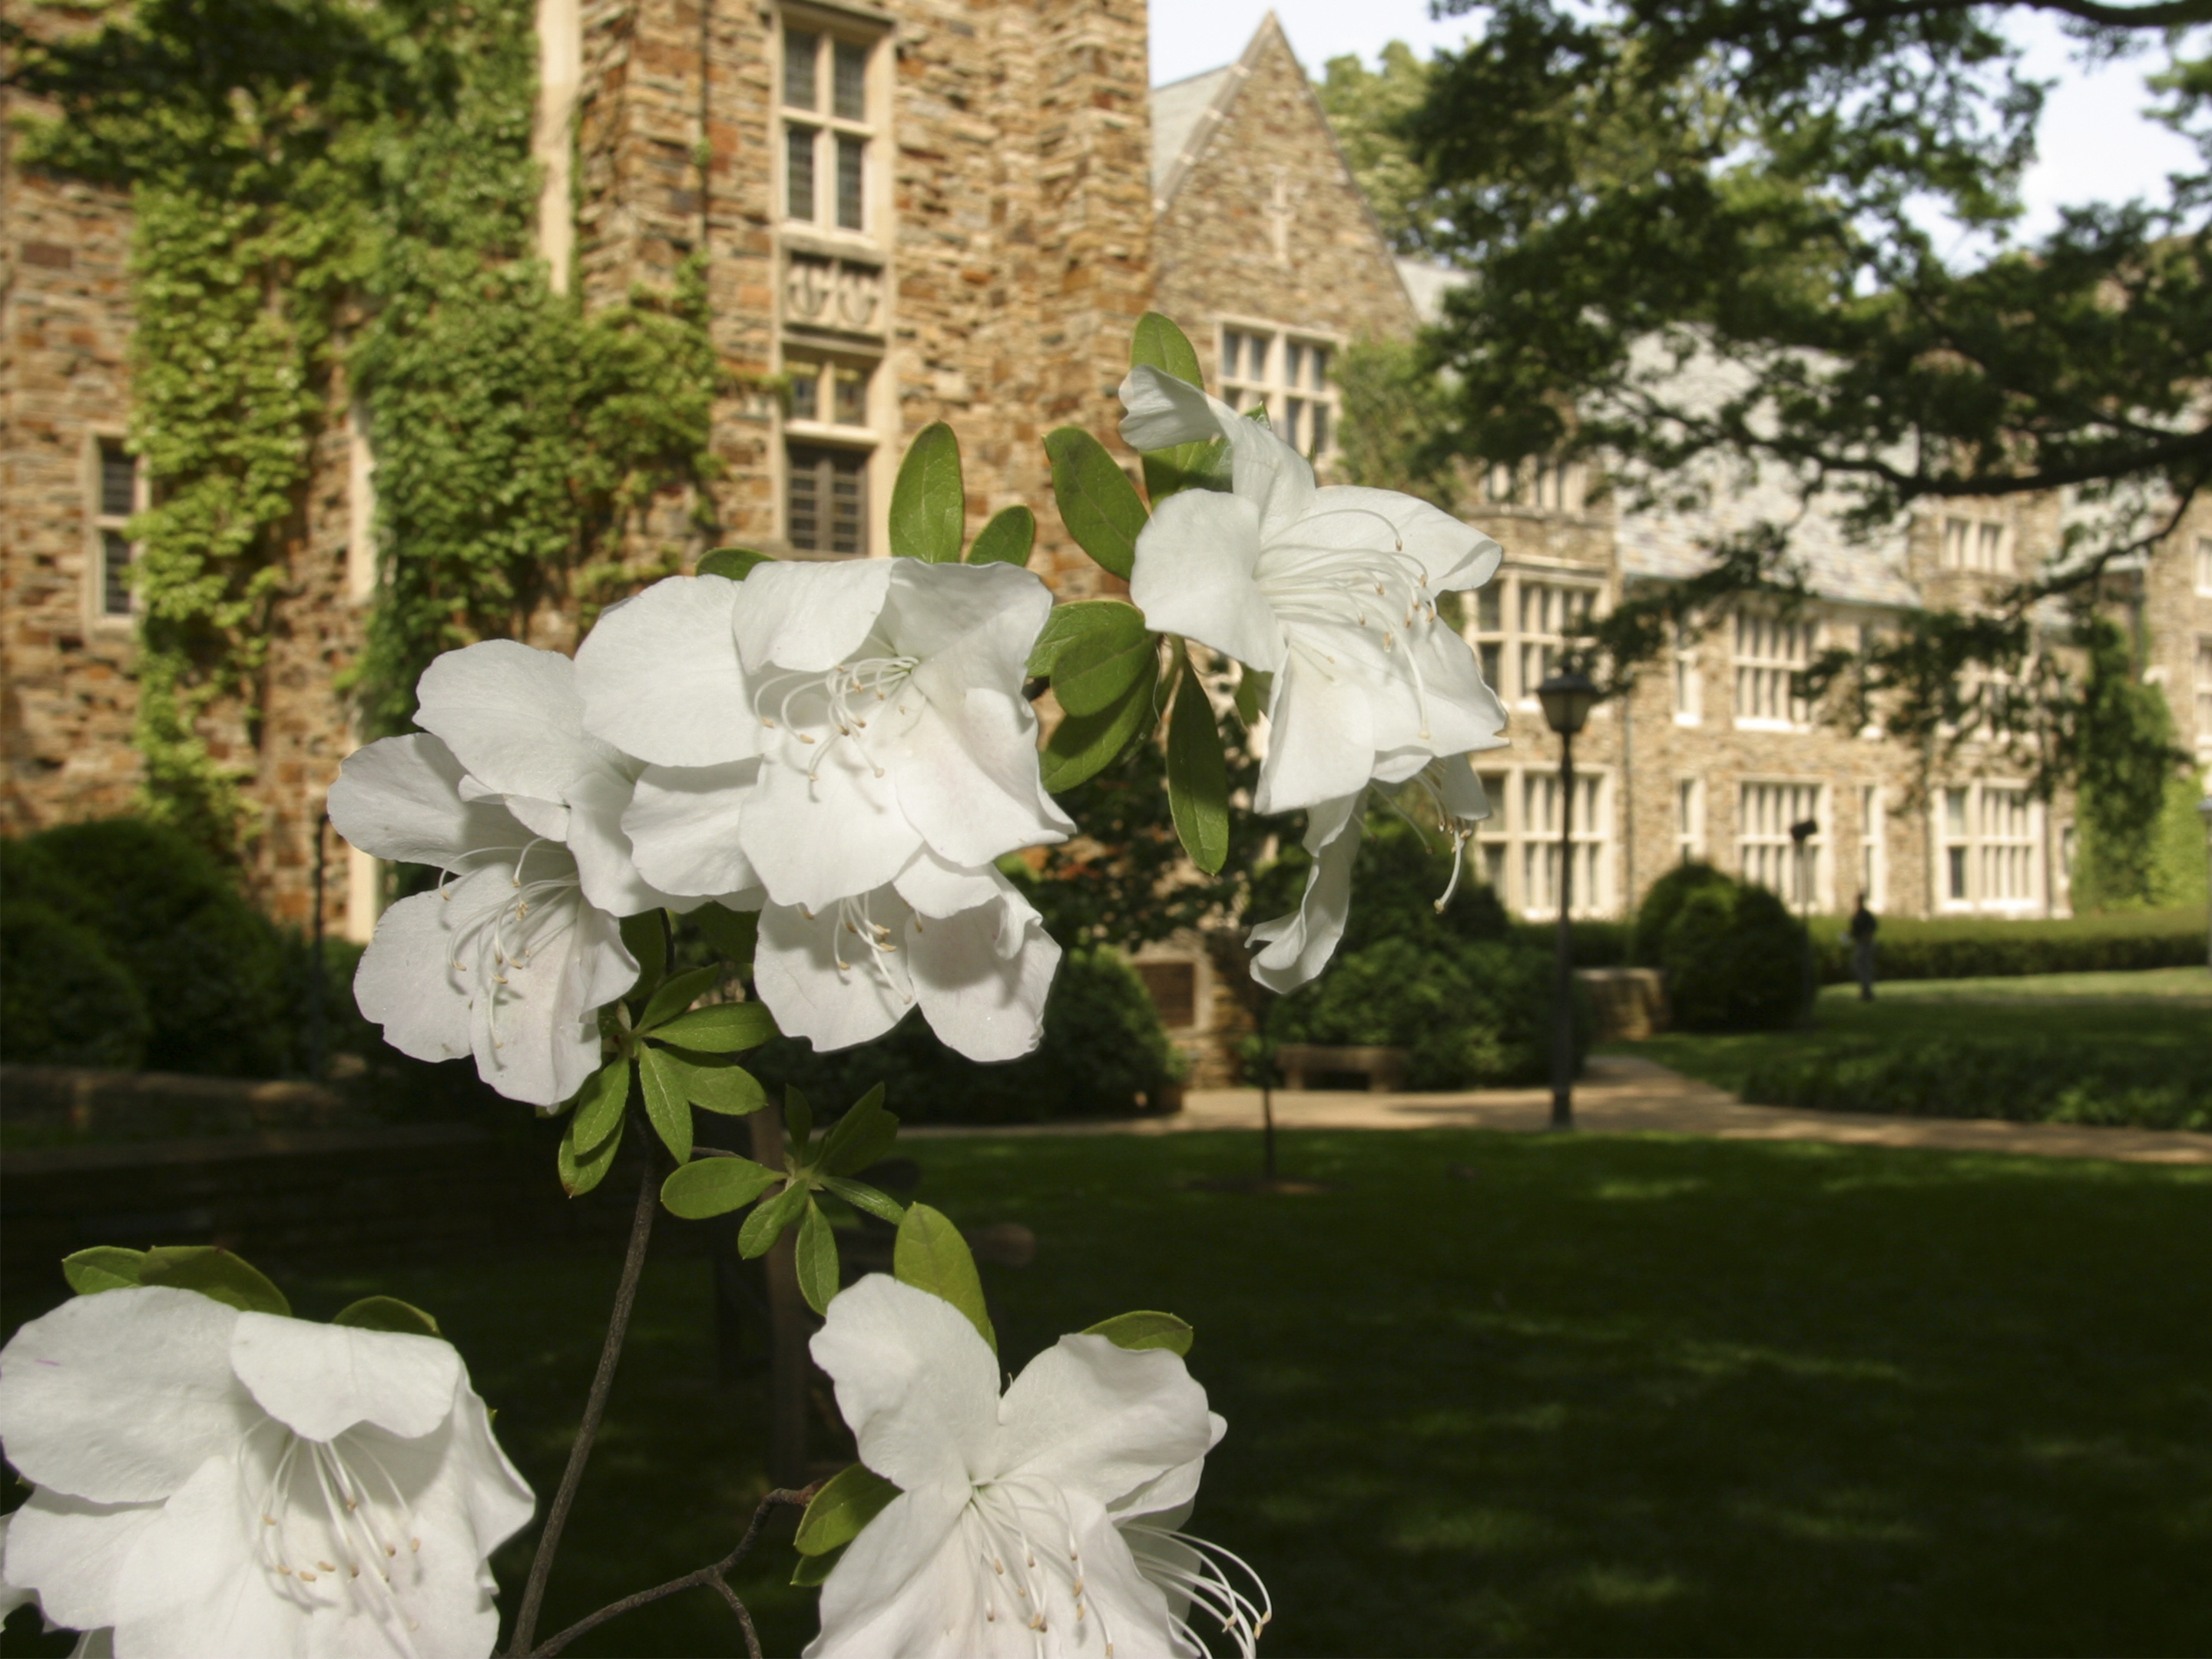 Flowers bloom on a tree in front of a Rhodes building